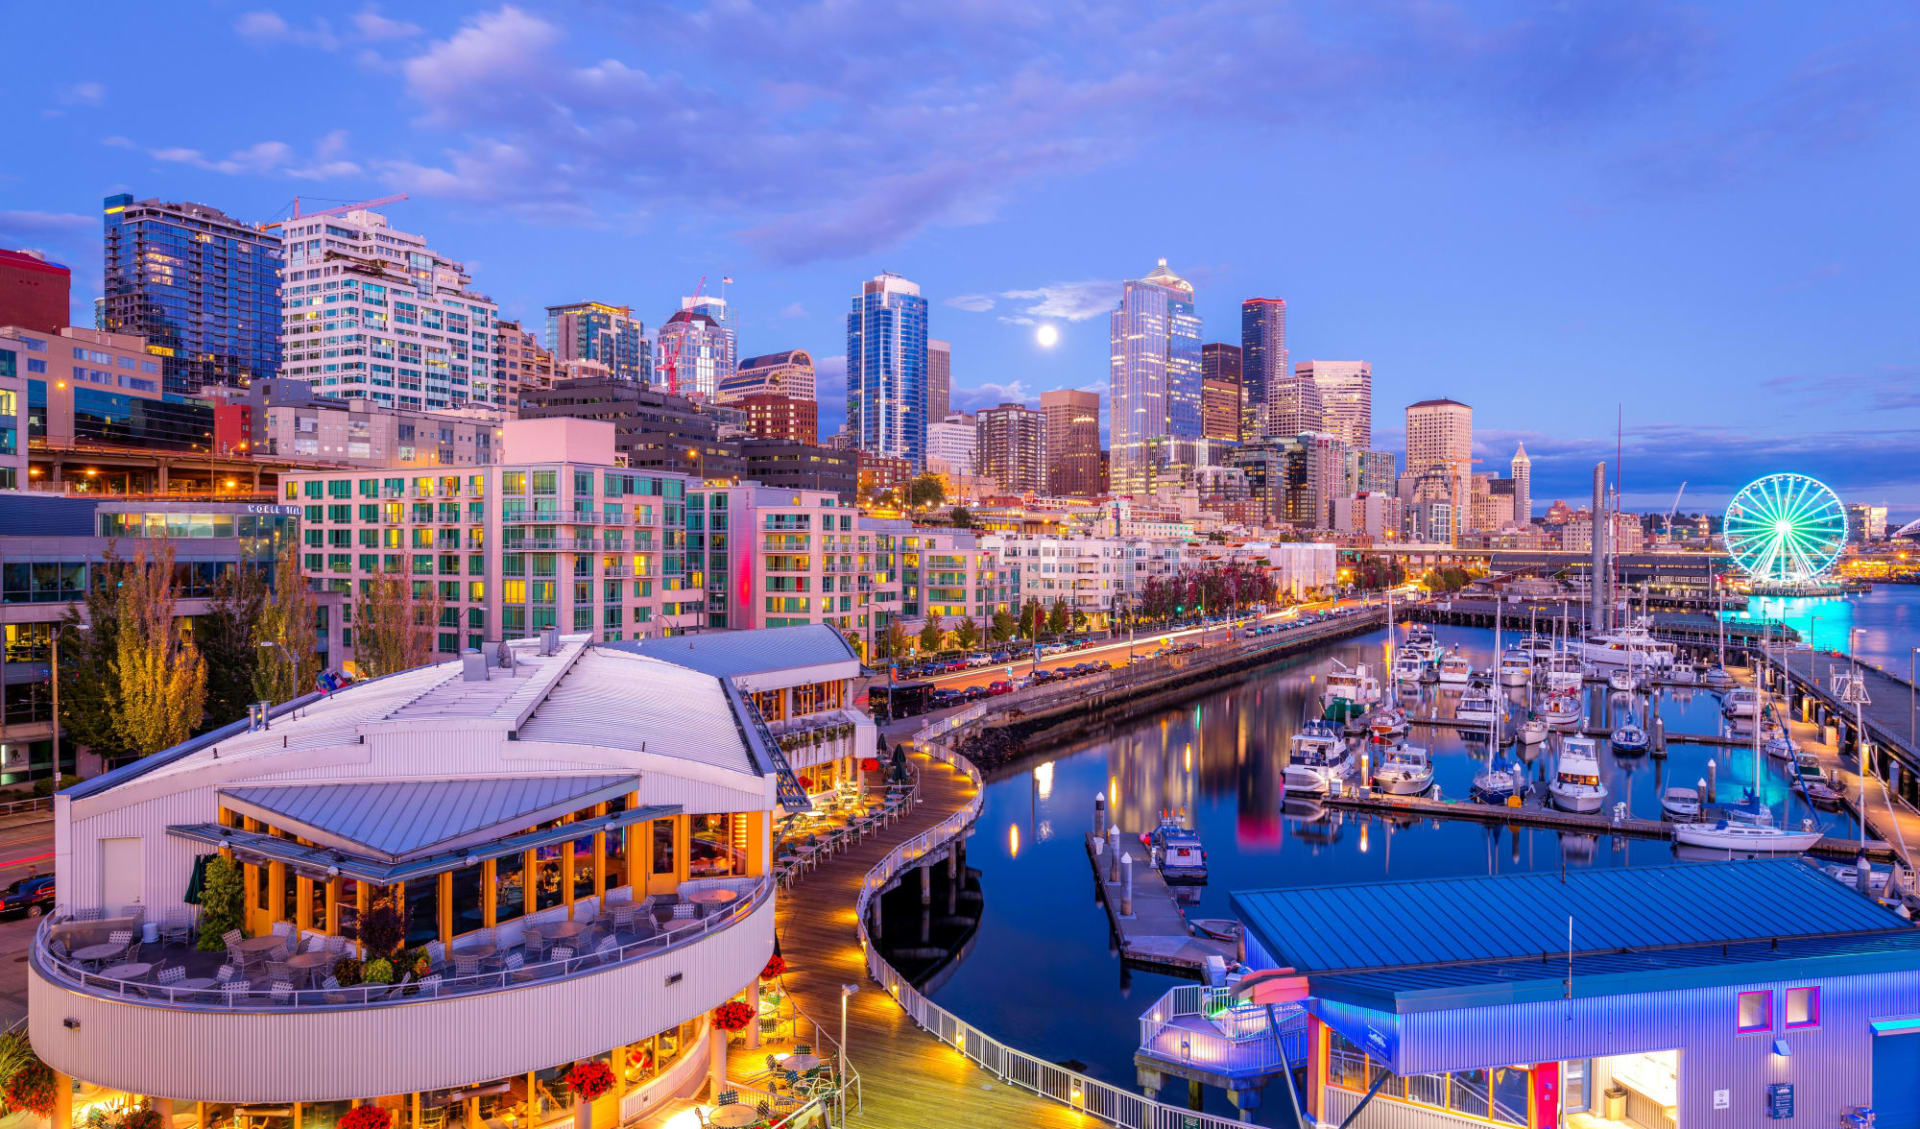 Executive Hotel Pacific in Seattle: shutterstock_355279232_seattle